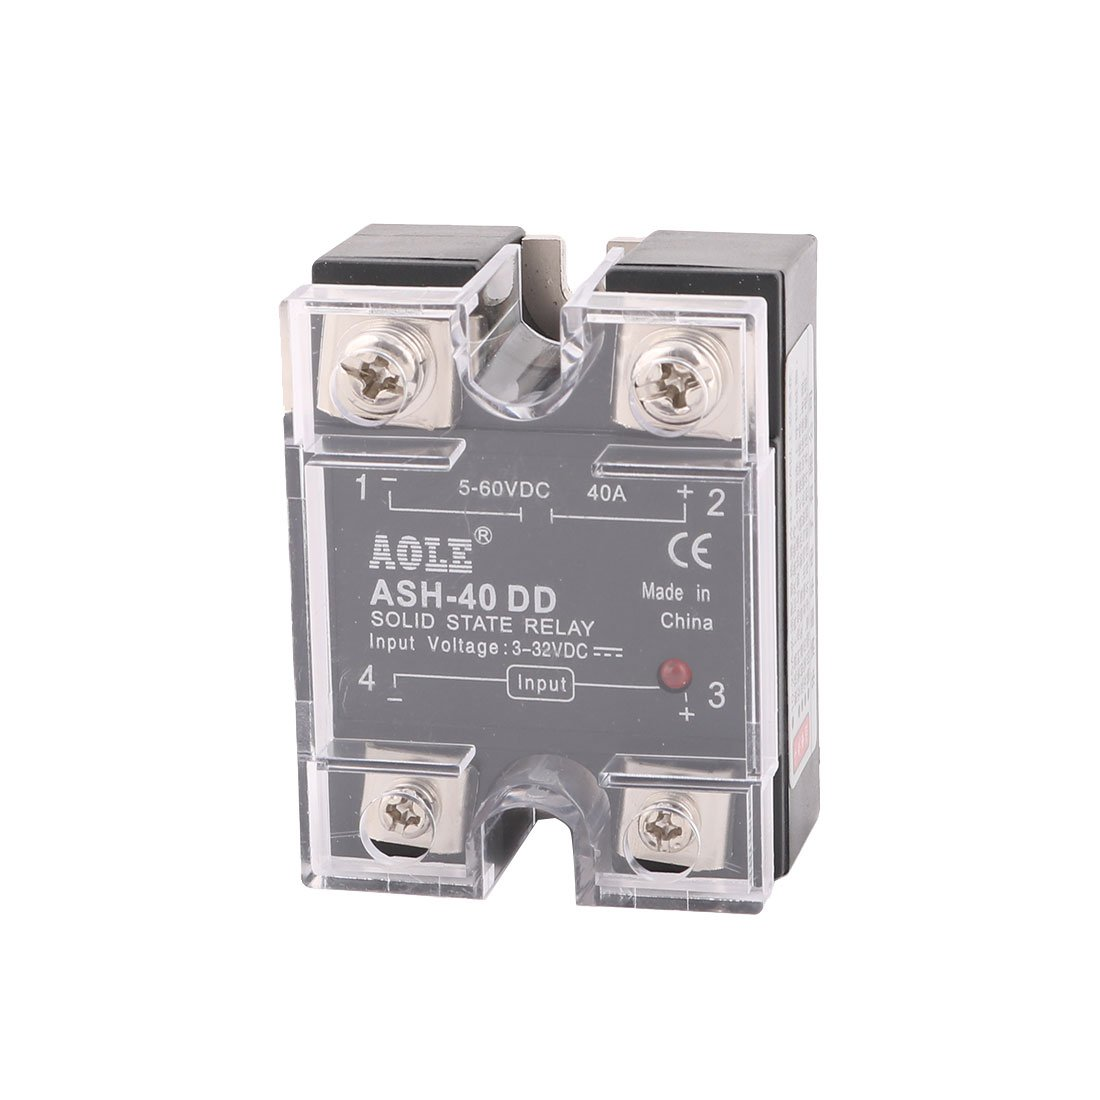 Uxcell Ash 40dd 3 32vdc To 5 60vdc 40a Single Phase Solid State Dc Relay Leakage